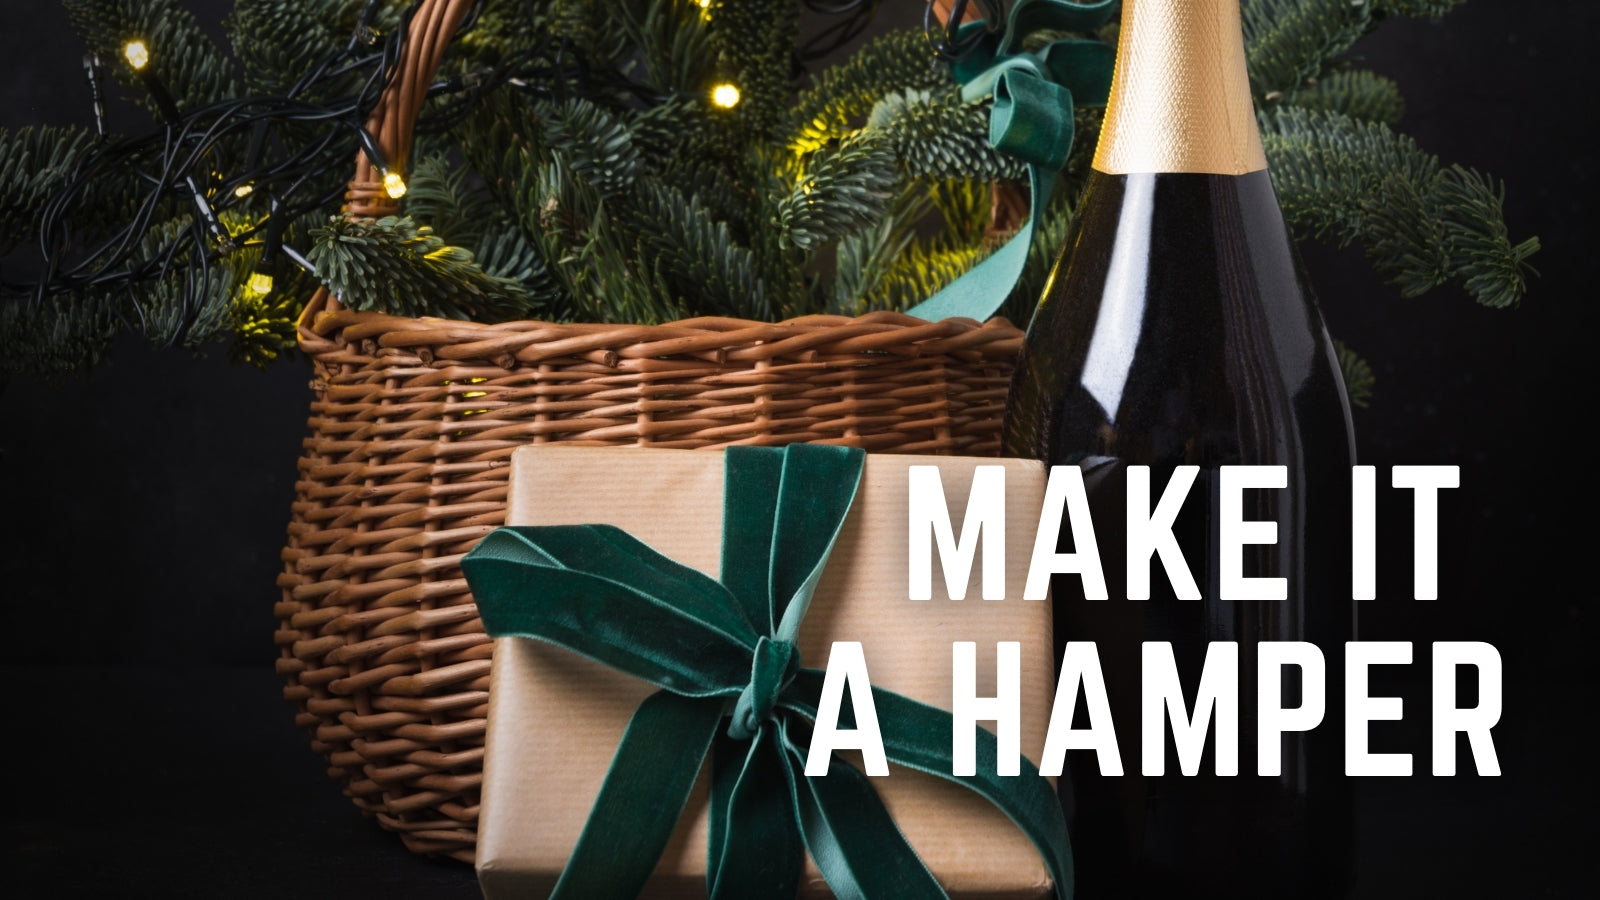 Make it a Hamper. Select gift options from our full store and we will build a hamper for you. Weirs of Baggot Street